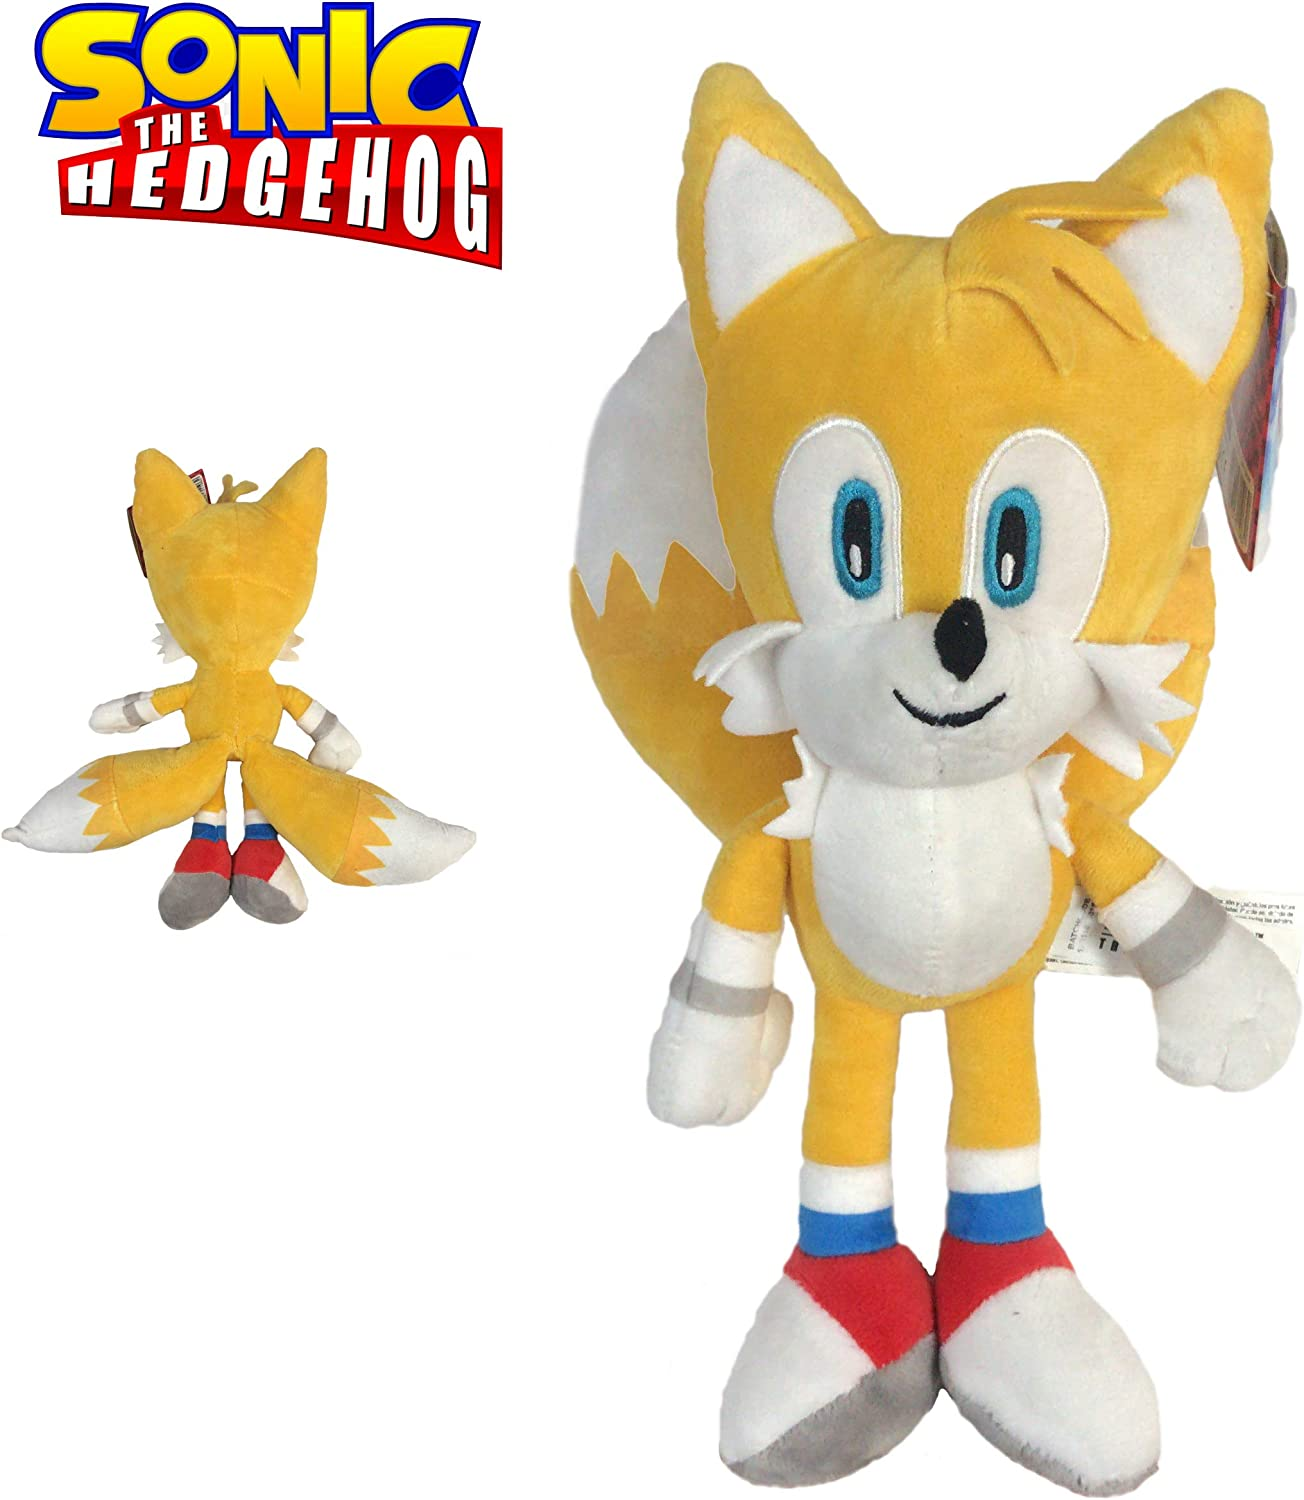 Sonic - Peluche Tails Miles Prower 13